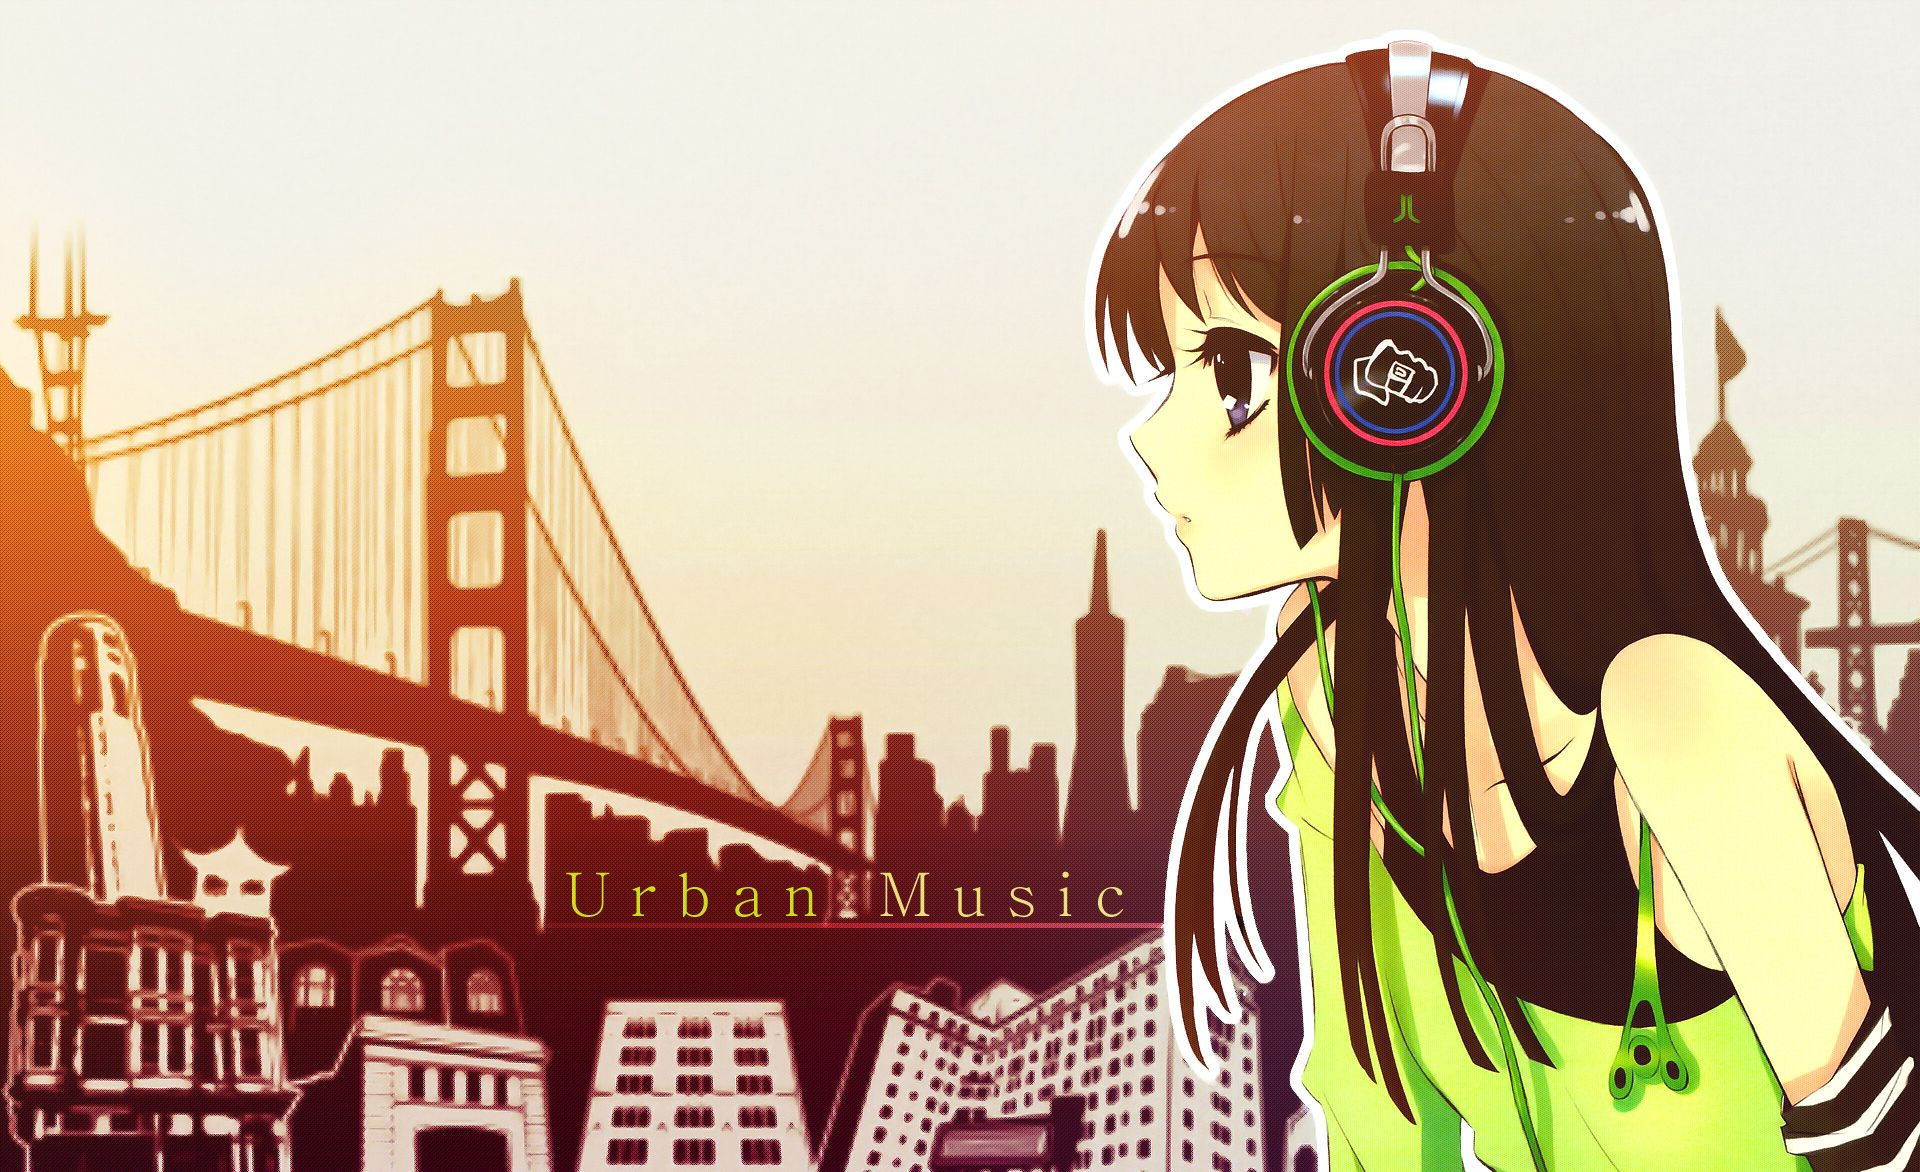 Good Wallpaper Music Anime - 5b8ece0fc9567923108f035cf568545b  2018_486535.jpg